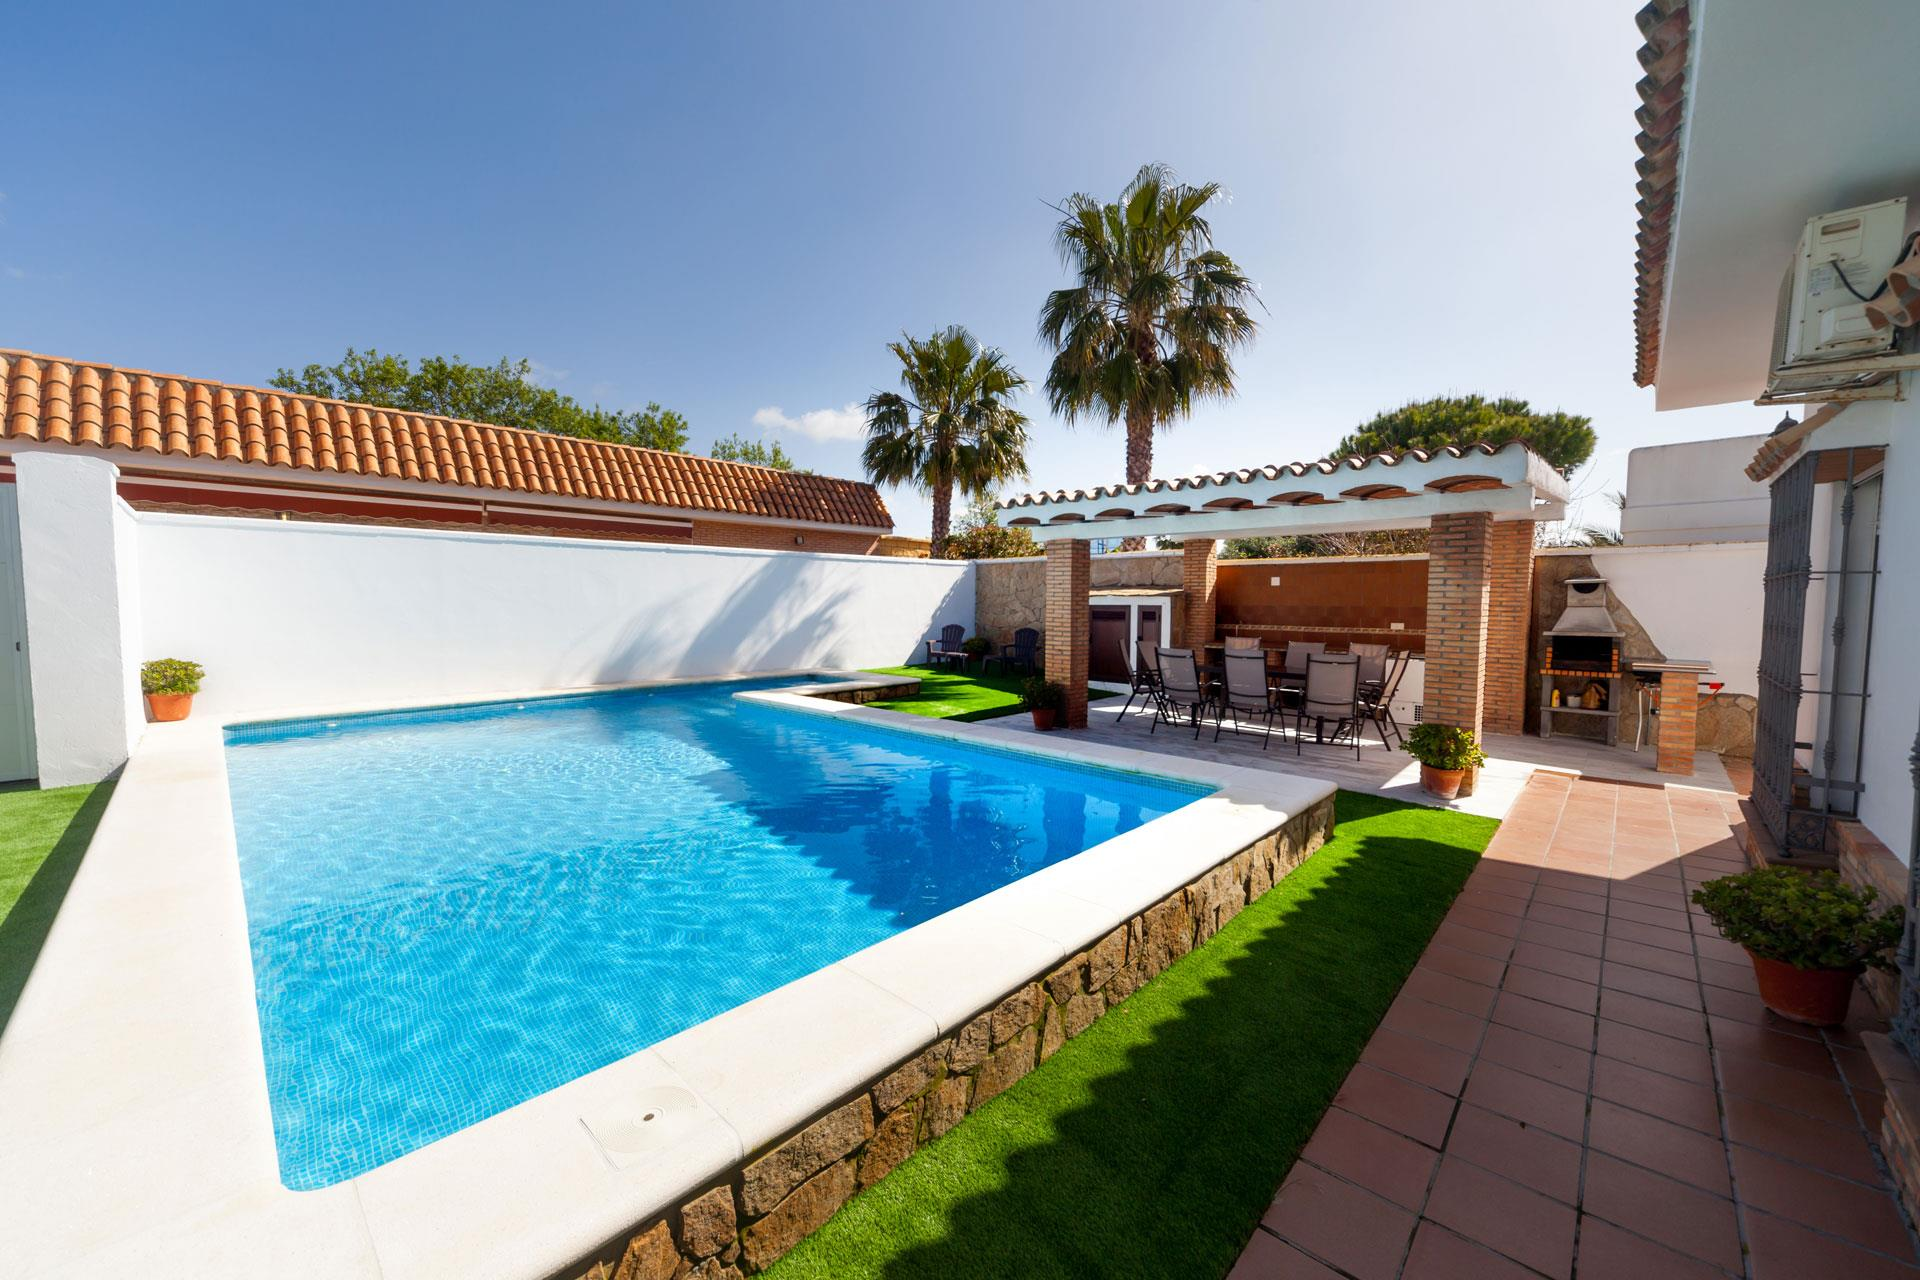 El Molino, Comfortable villa in Chiclana de la Frontera, Andalusia, Spain  with private pool for 10 persons.....